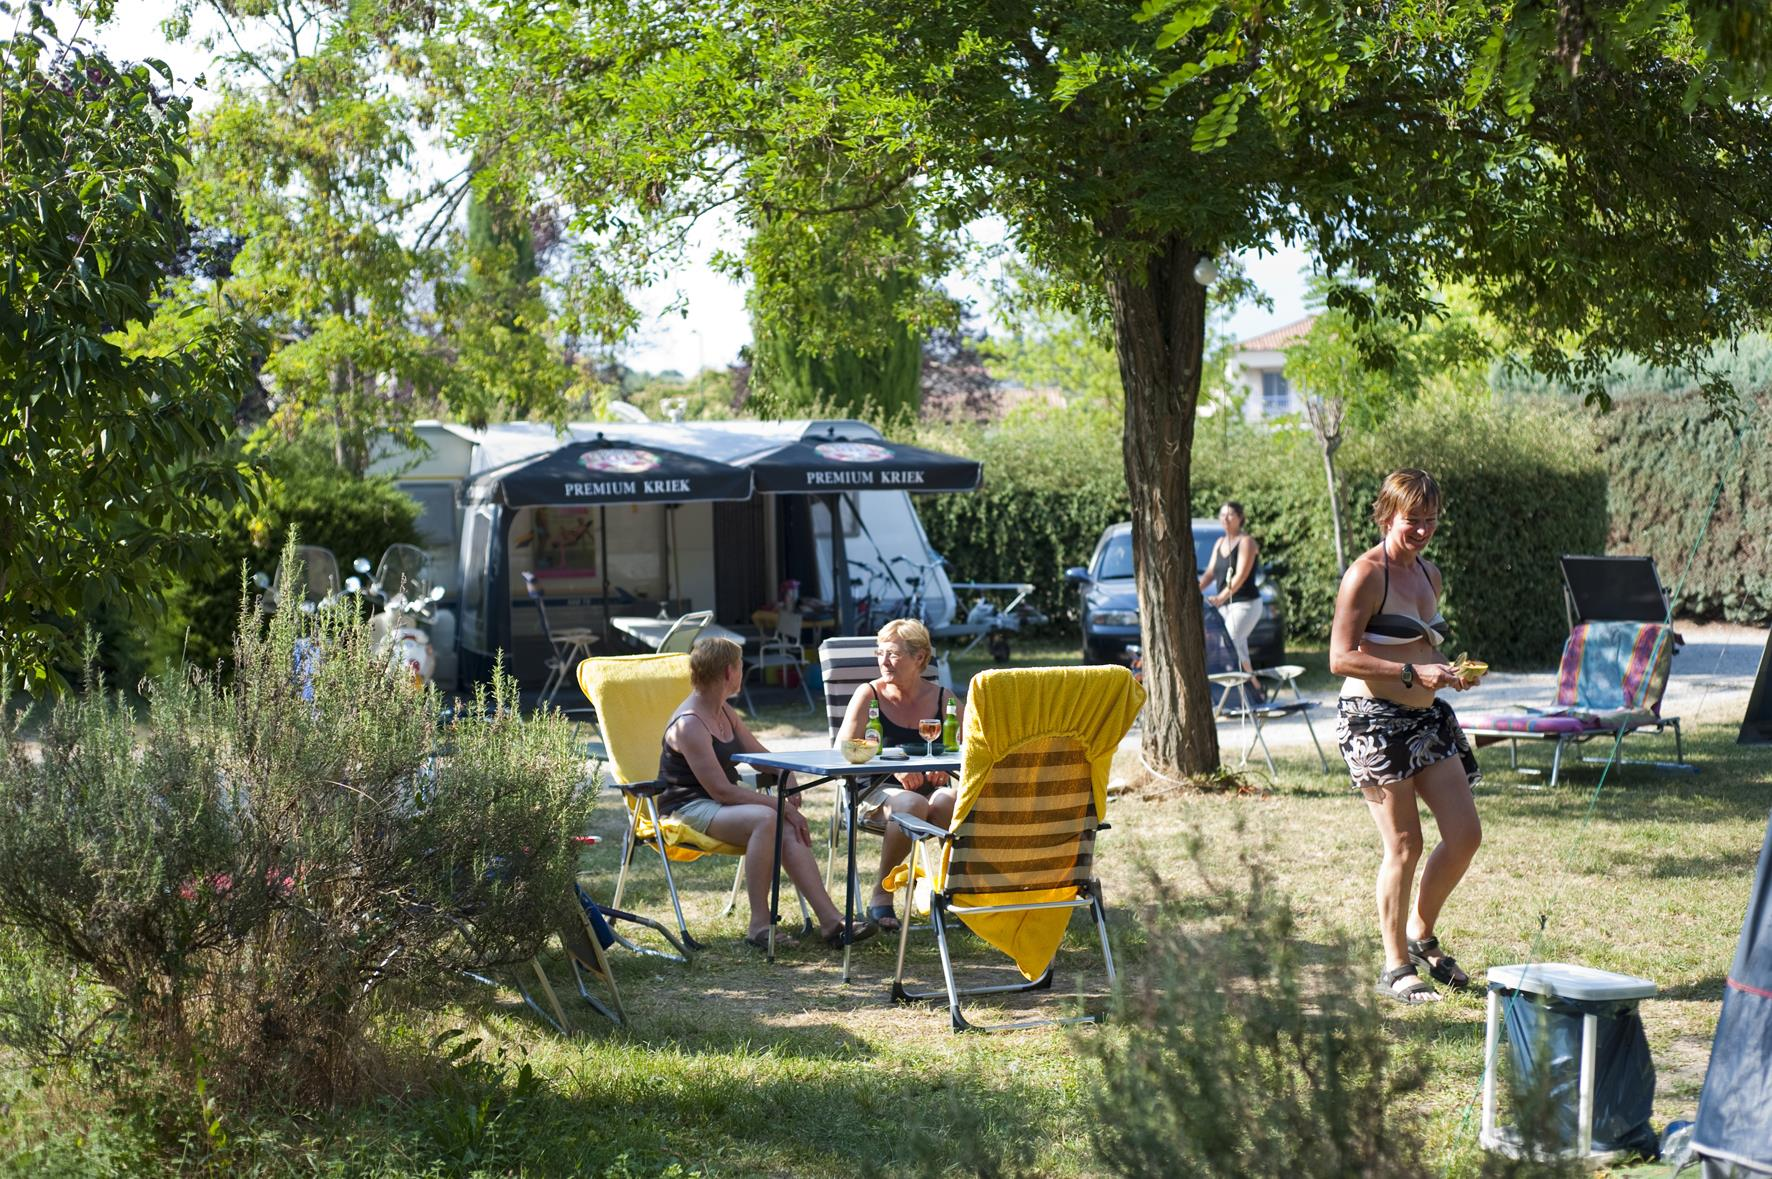 Emplacement - Emplacement Camping + - Camping Forcalquier